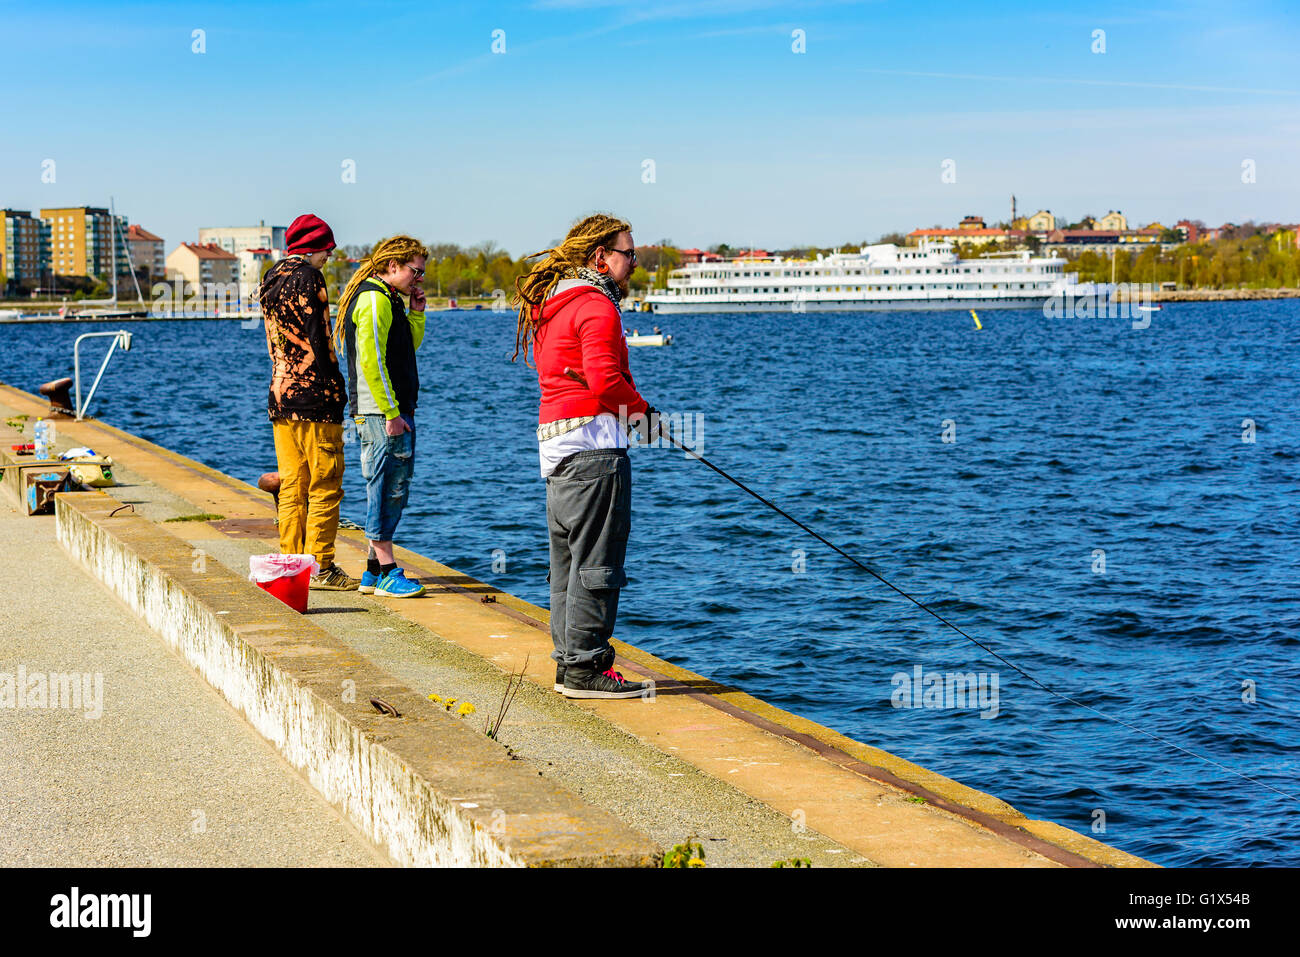 Karlskrona, Sweden - May 3, 2016: Three young adults standing dockside. One is fishing after herring. Two have dreadlocks - Stock Image